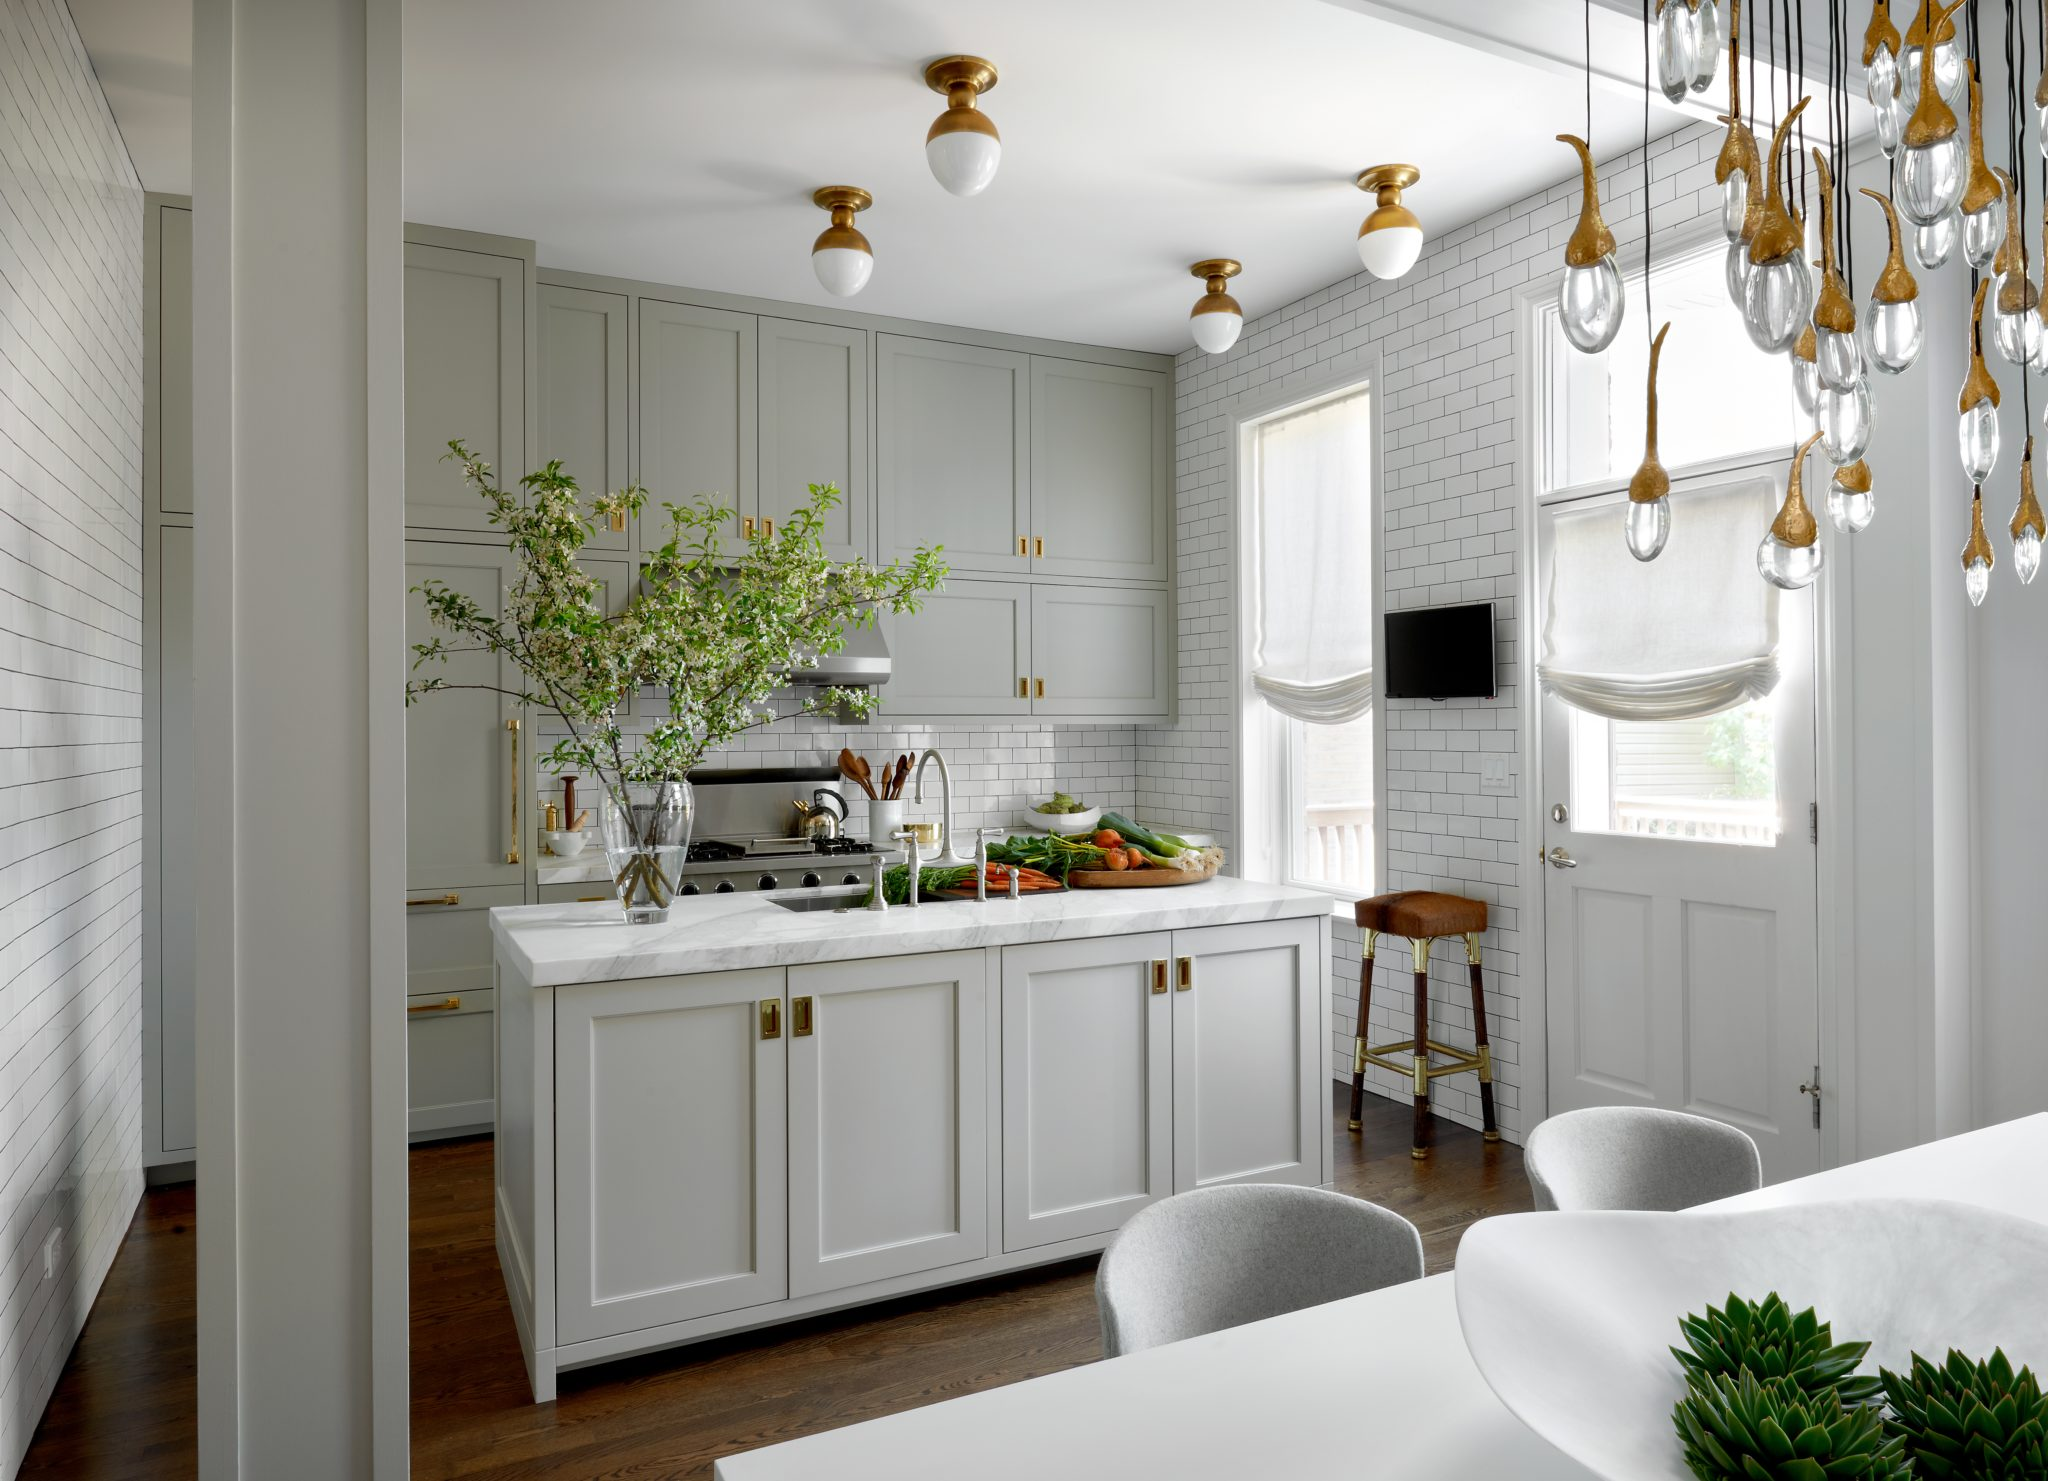 Chicago kitchen by Lisa Gutow Design